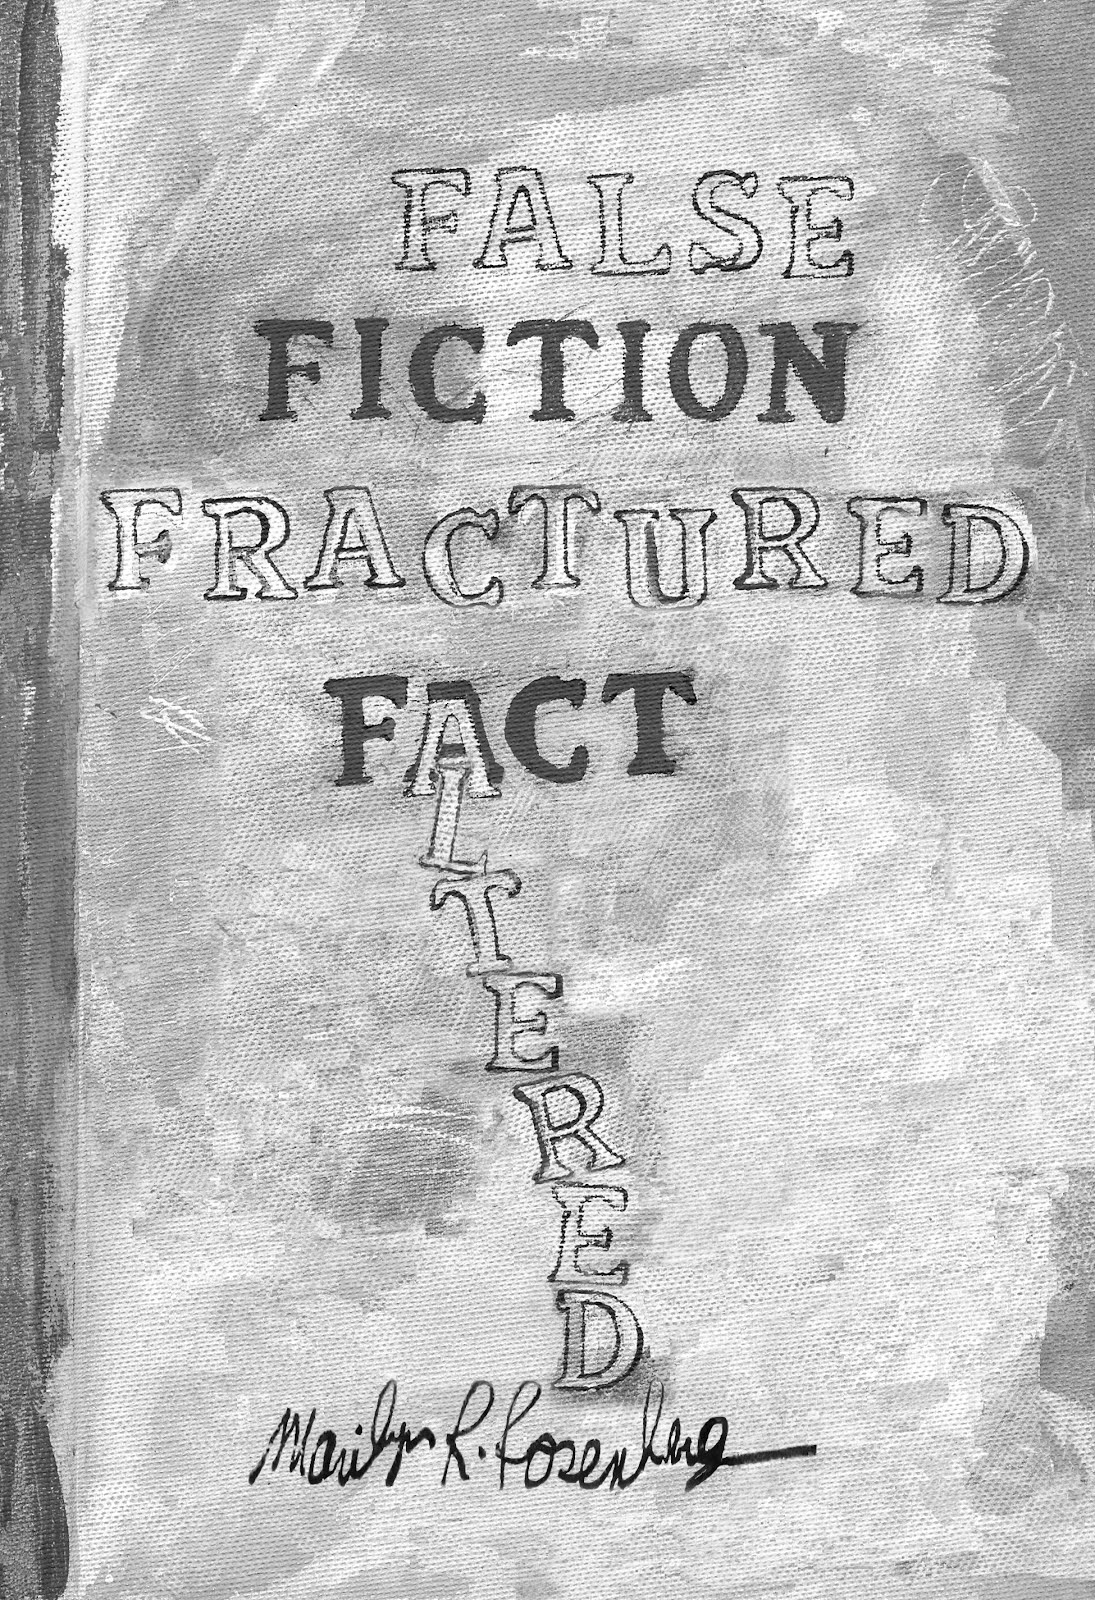 Available Now @ Amazon! FALSE FICTION FRACTURED FACT ALTERED by Marilyn R. Rosenberg